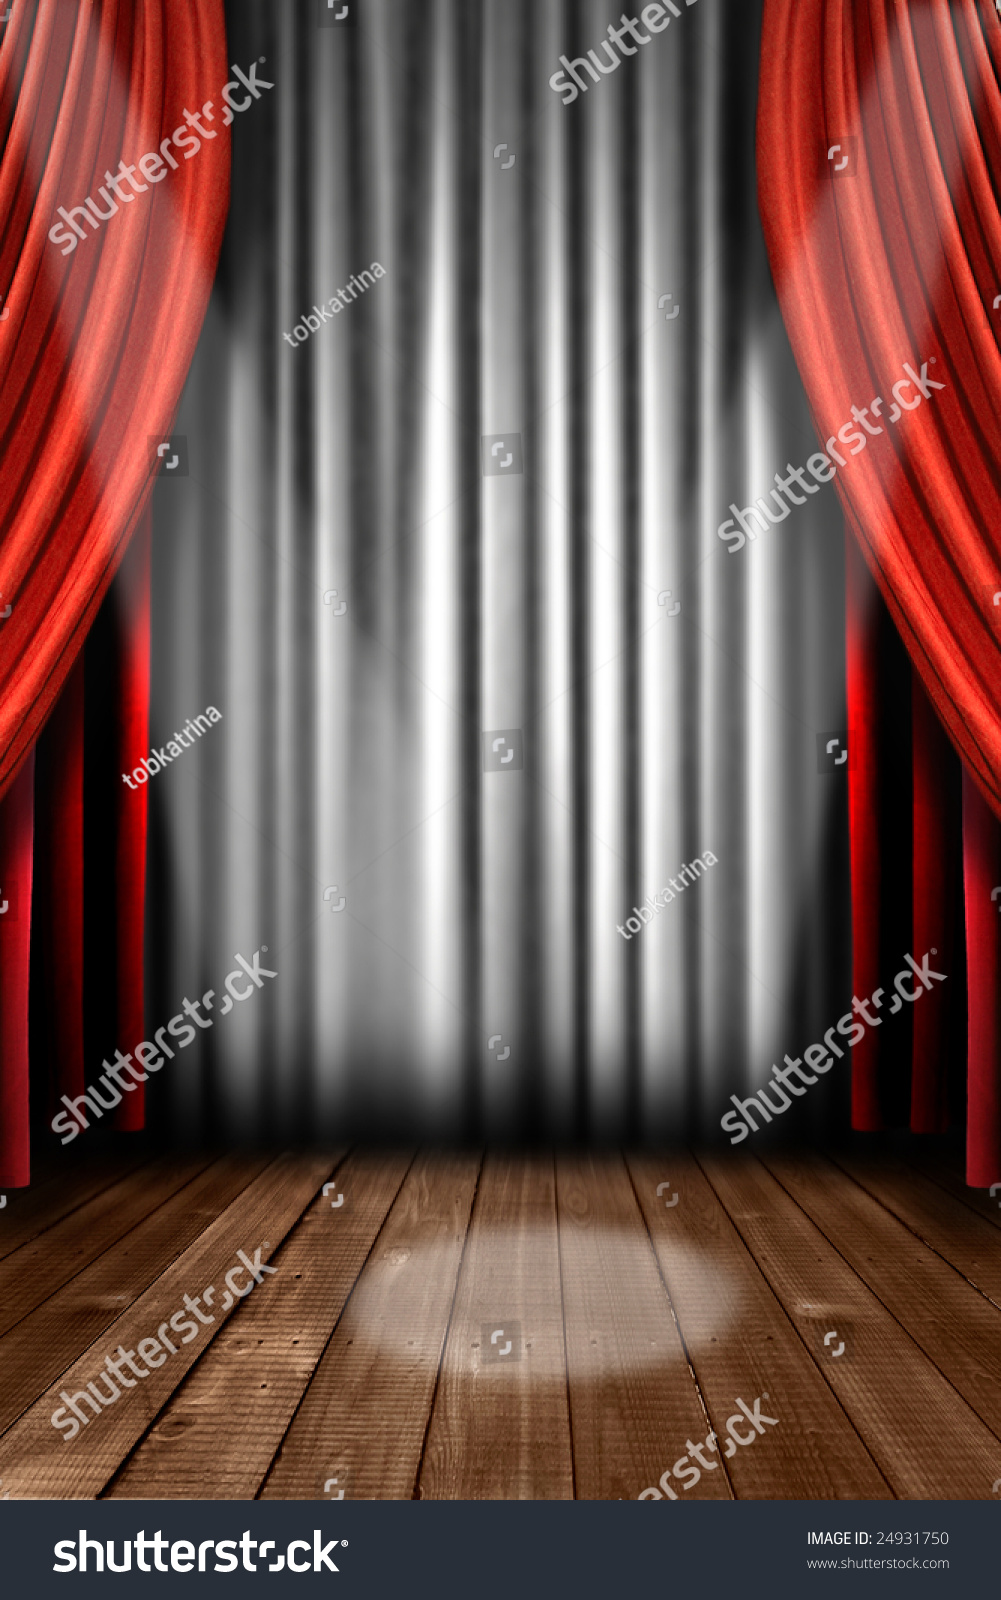 Stock photo dramatic red old fashioned elegant theater stage stock - Vertical Stage Drapes With Dramatic Spotlight In The Center